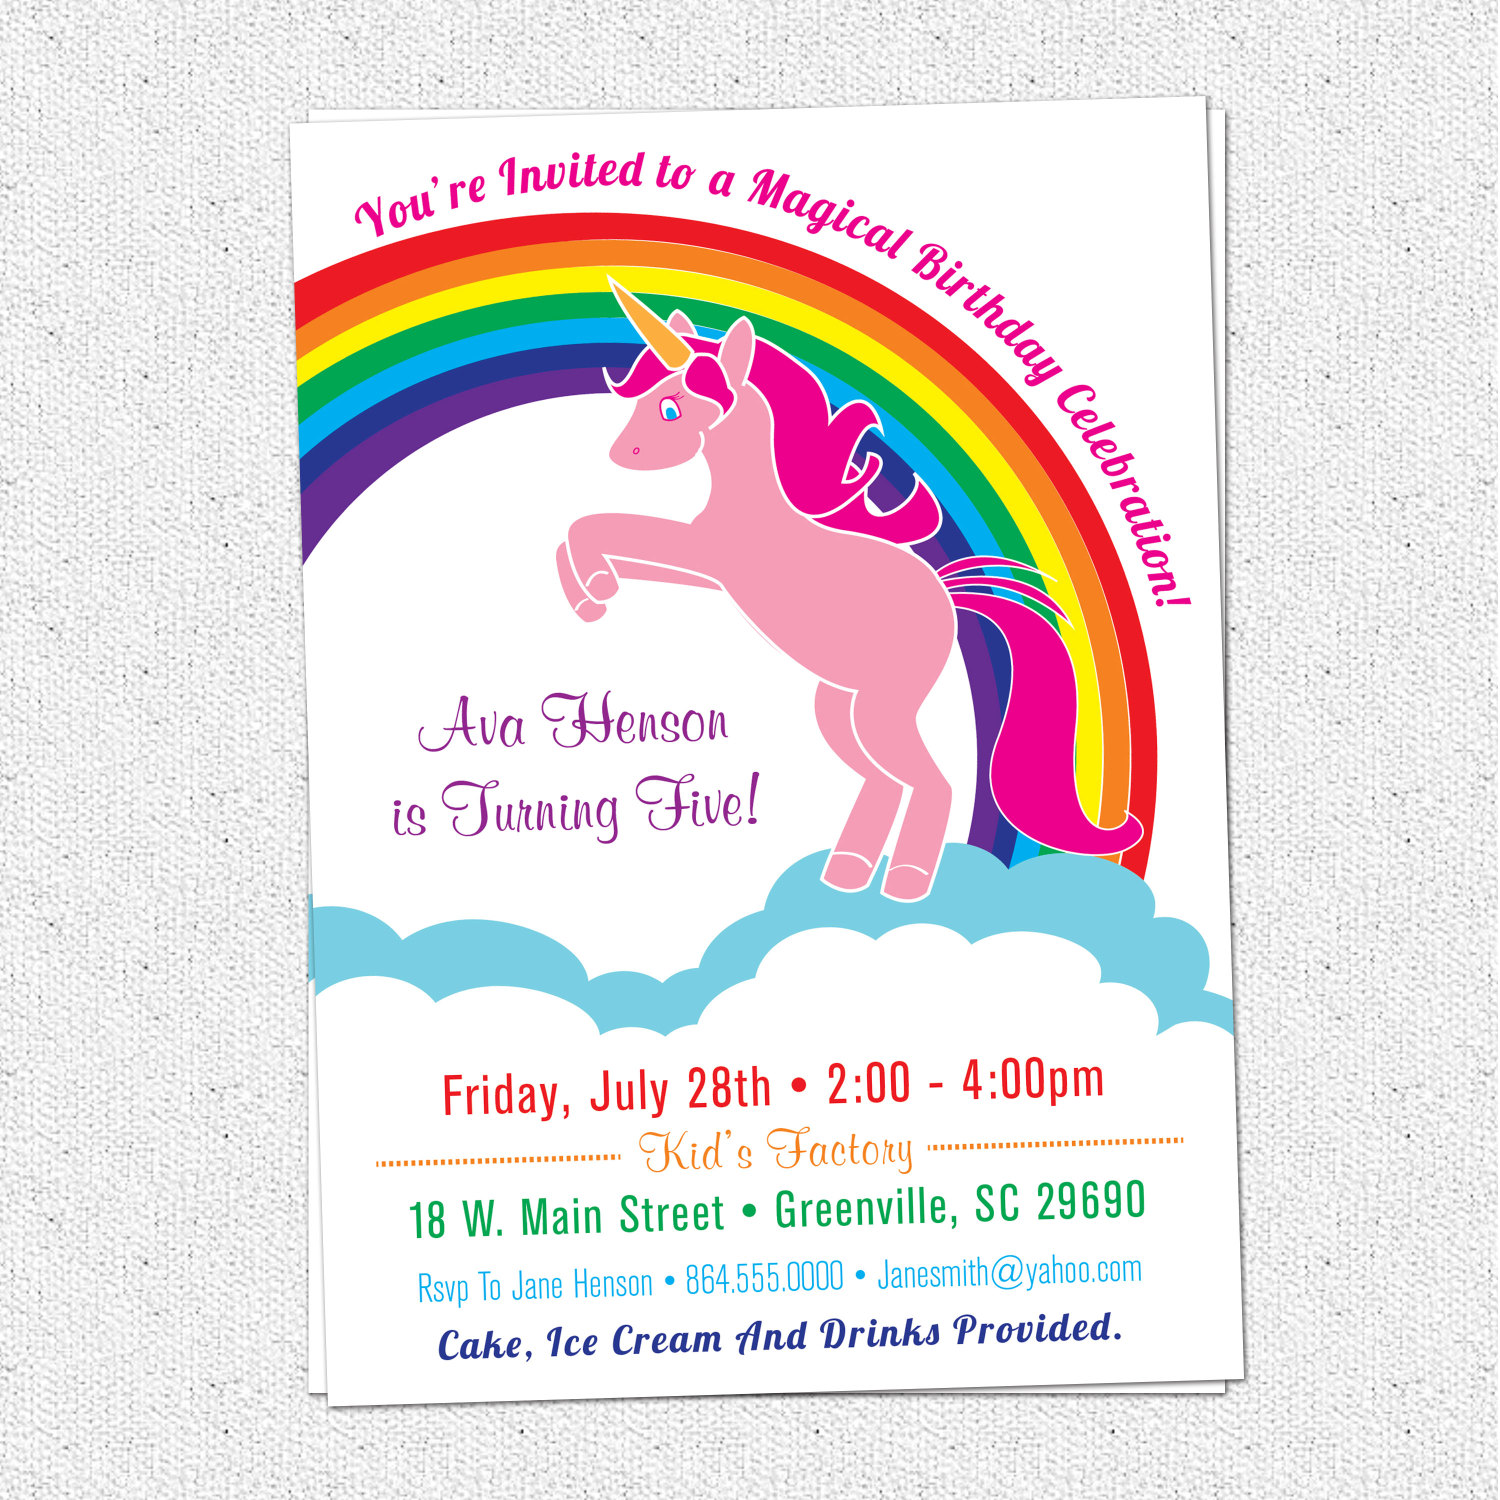 Unicorn birthday party invitations rainbow pink pony girl il fullxfull429064789 3baj original filmwisefo Image collections